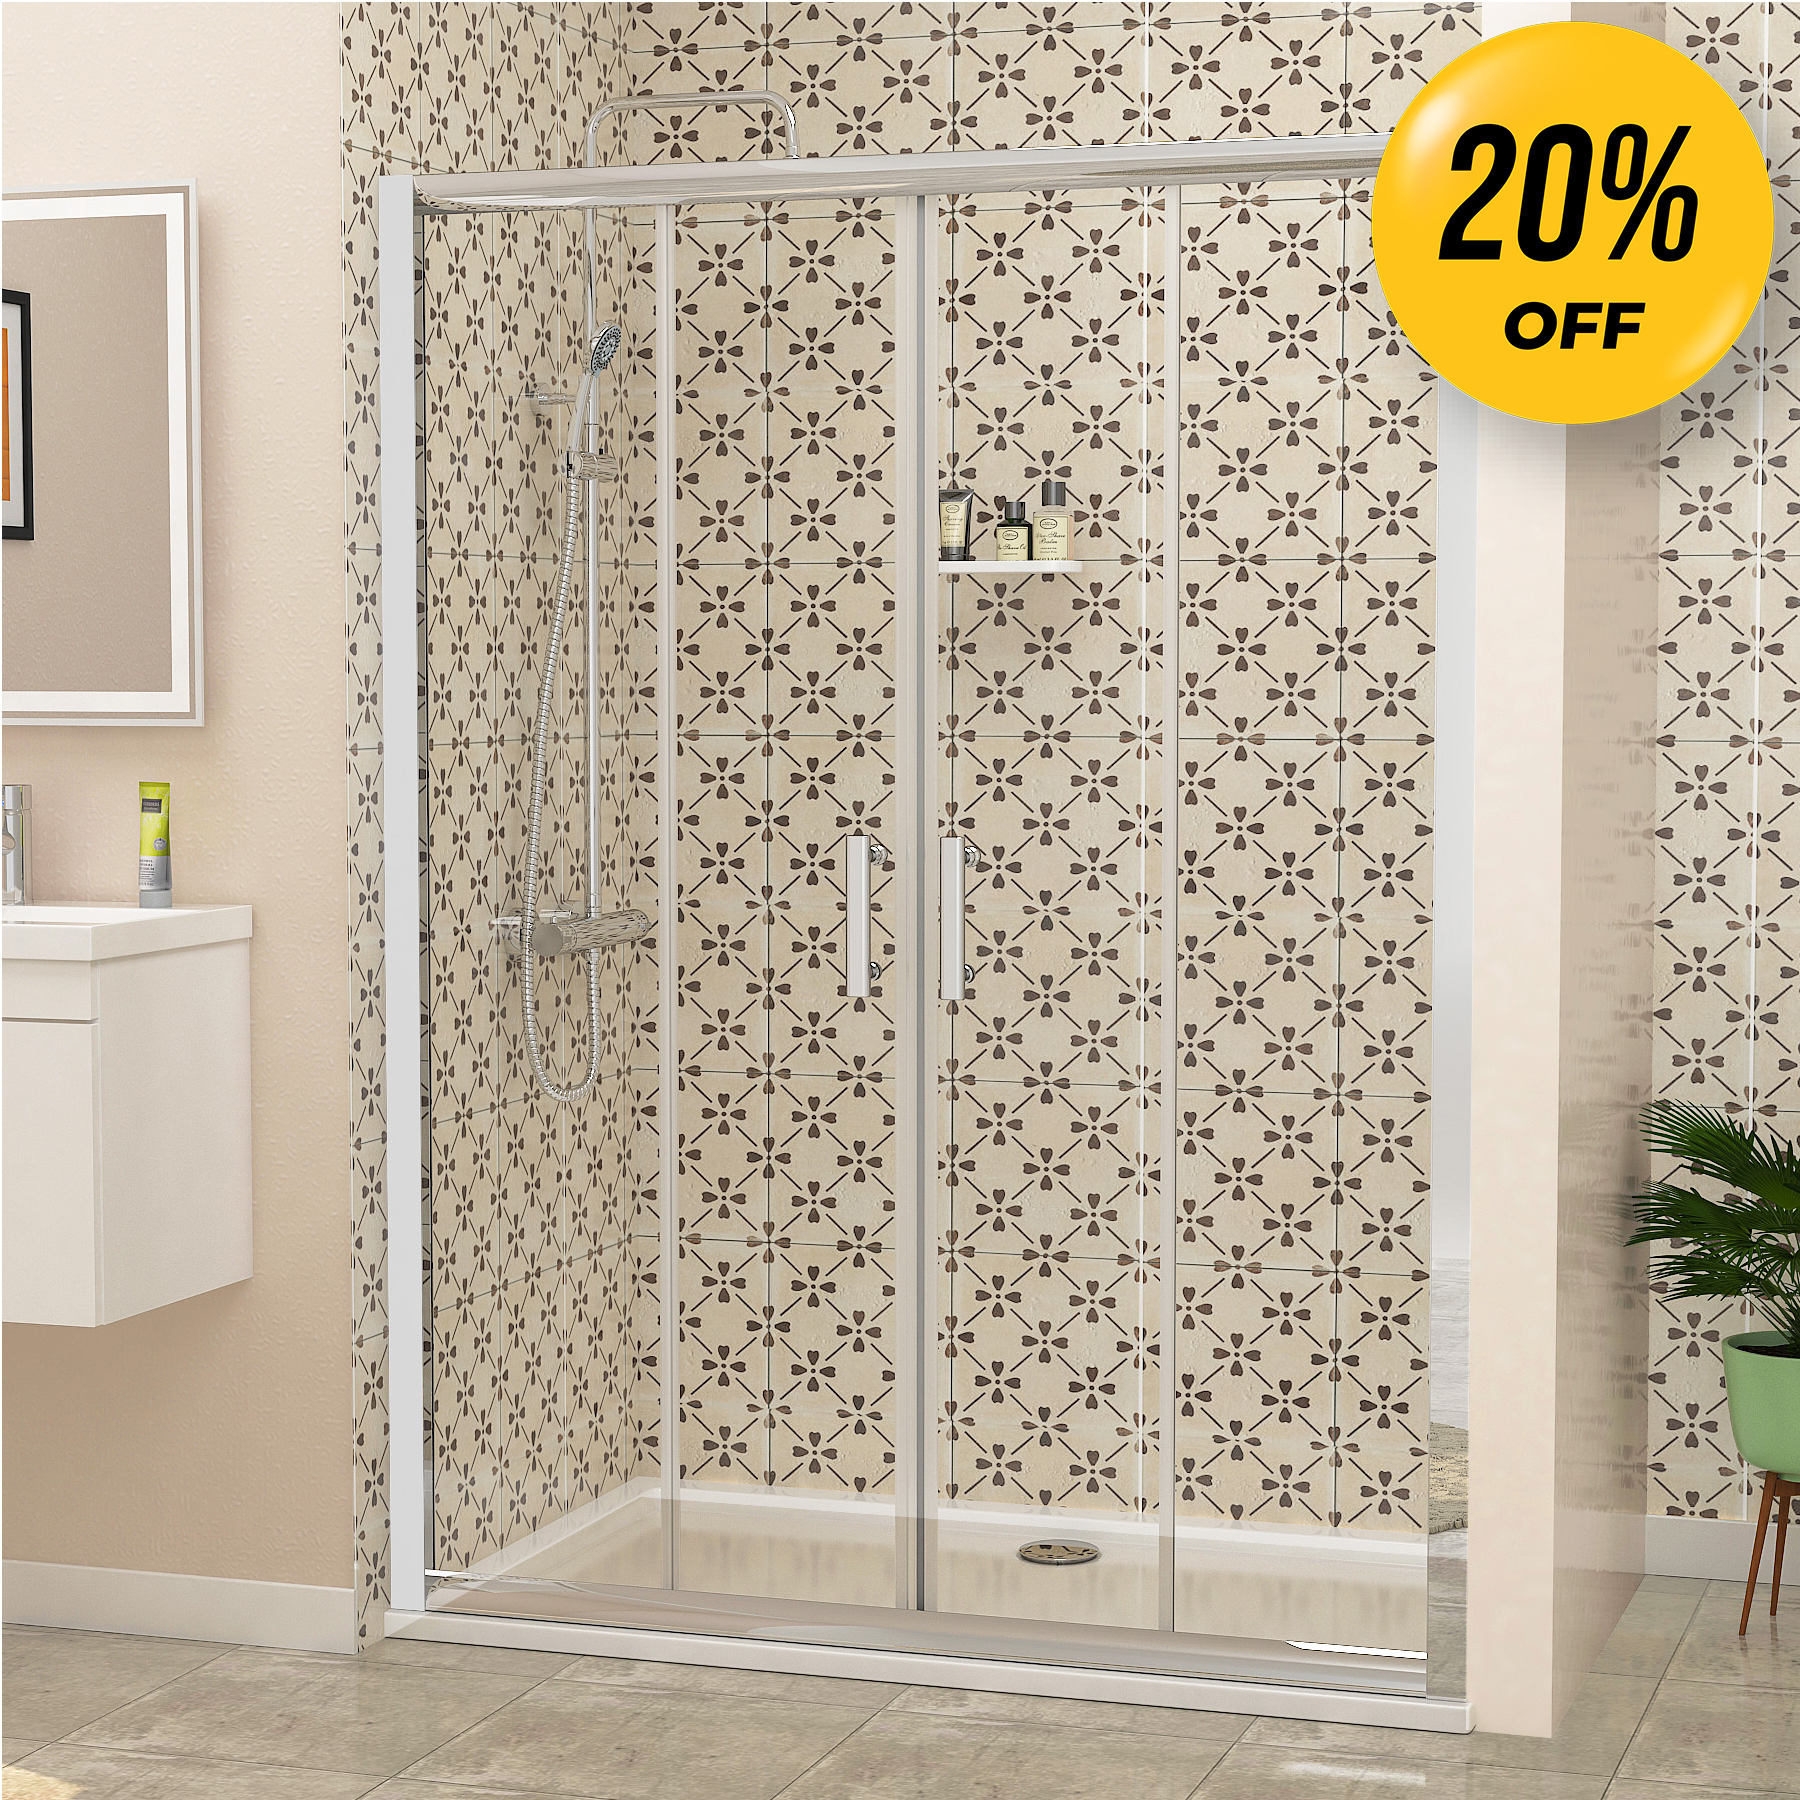 Details About 1500 X 700mm Double Sliding Shower Enclosure Door Cubicle 6mm Glass Stone Tray